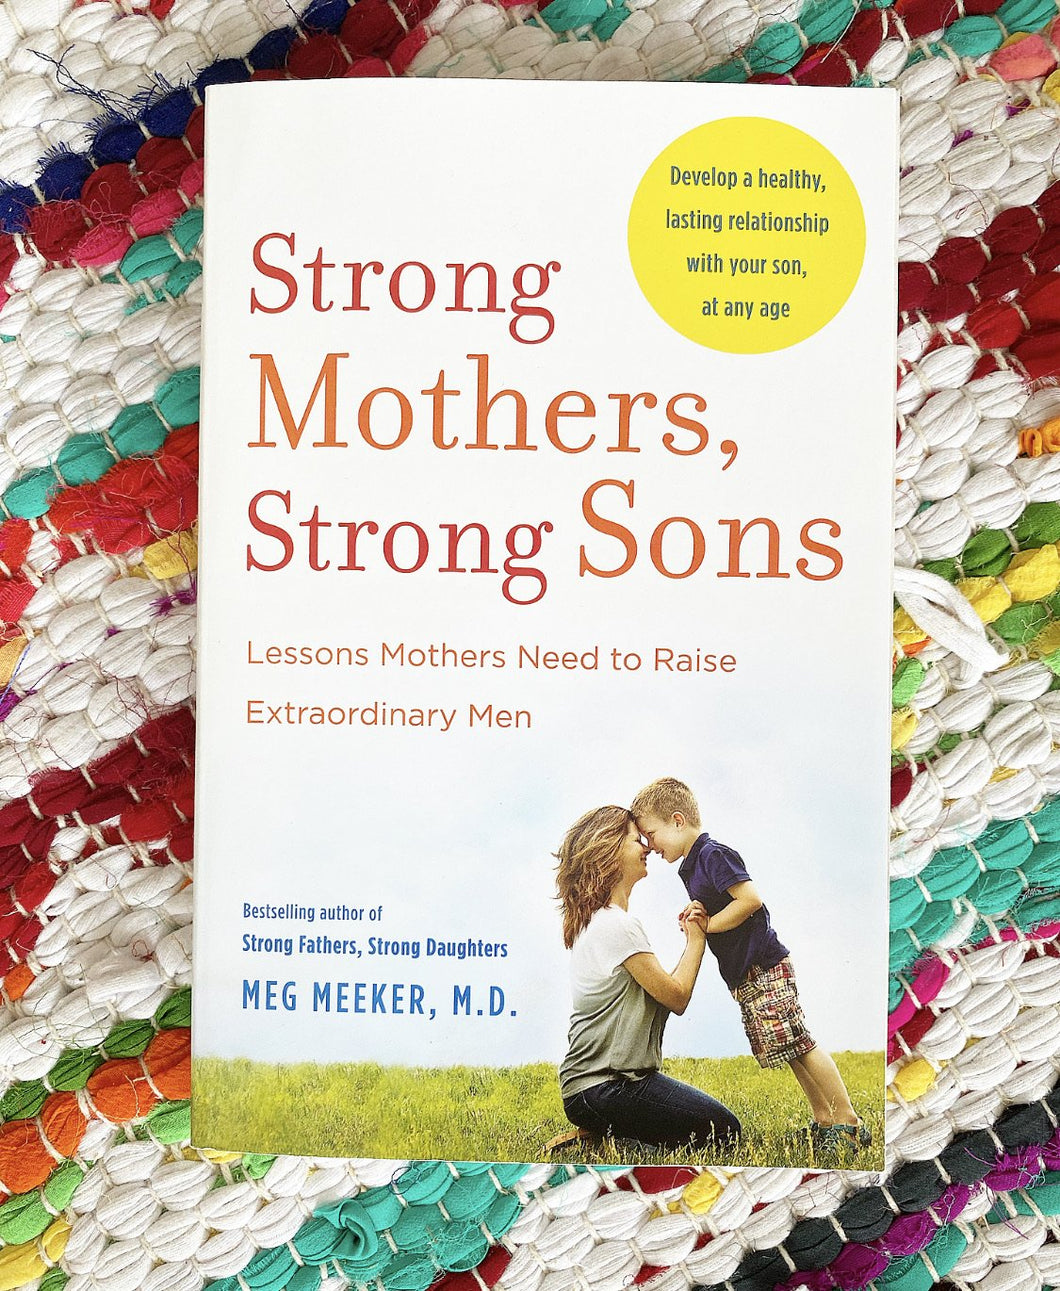 Strong Mothers, Strong Sons (hardcover) | Meg Meeker